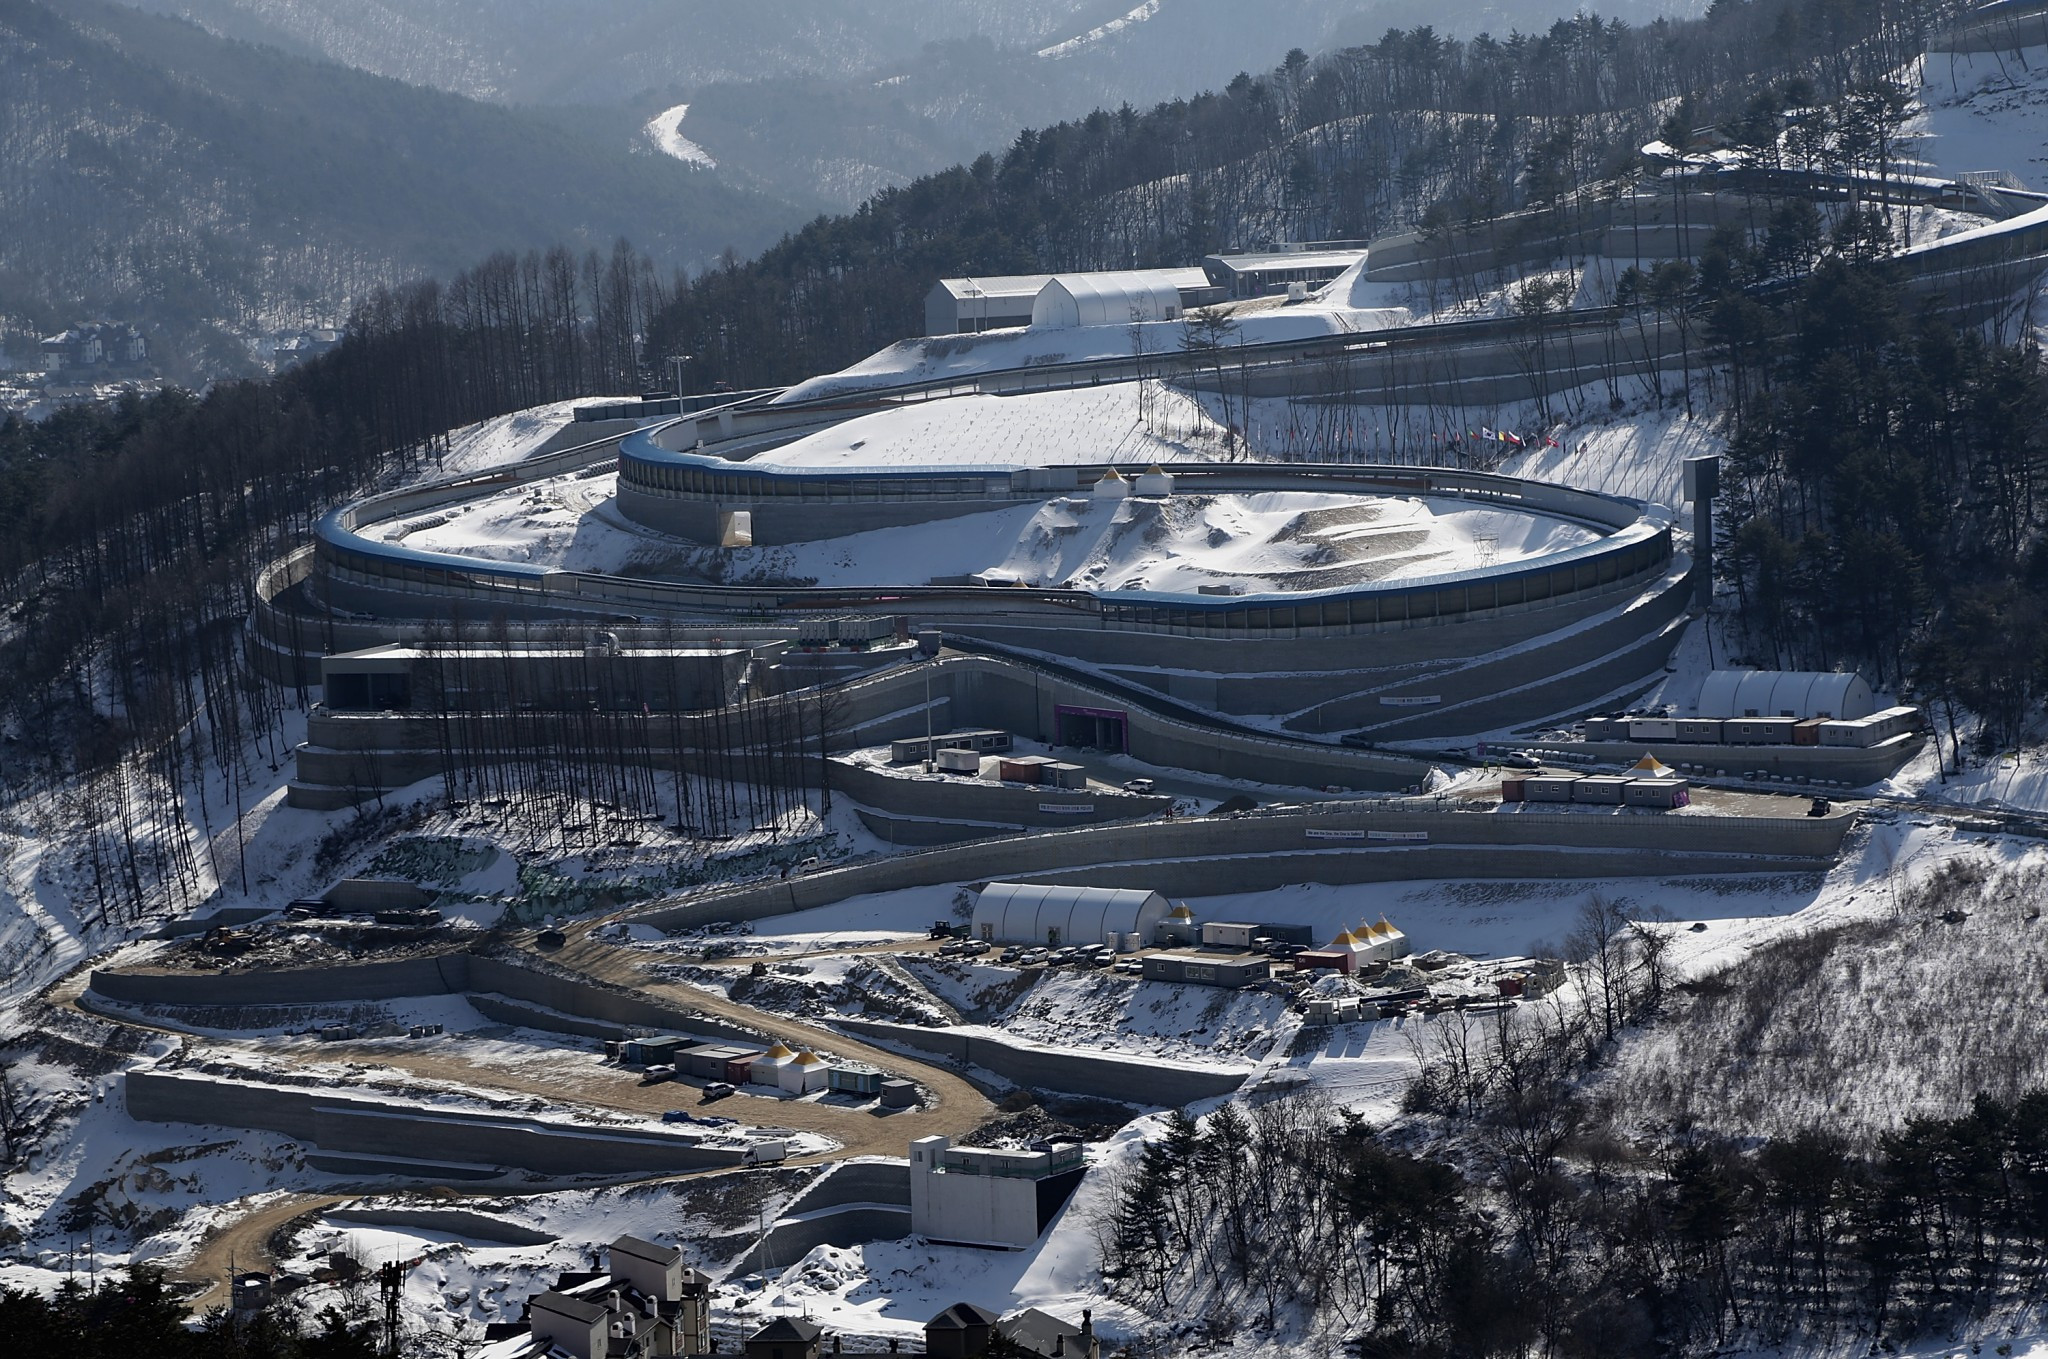 The Alpensia Sliding Centre will host bobsleigh, skeleton and luge competition during Pyeongchang 2018 ©Getty Images